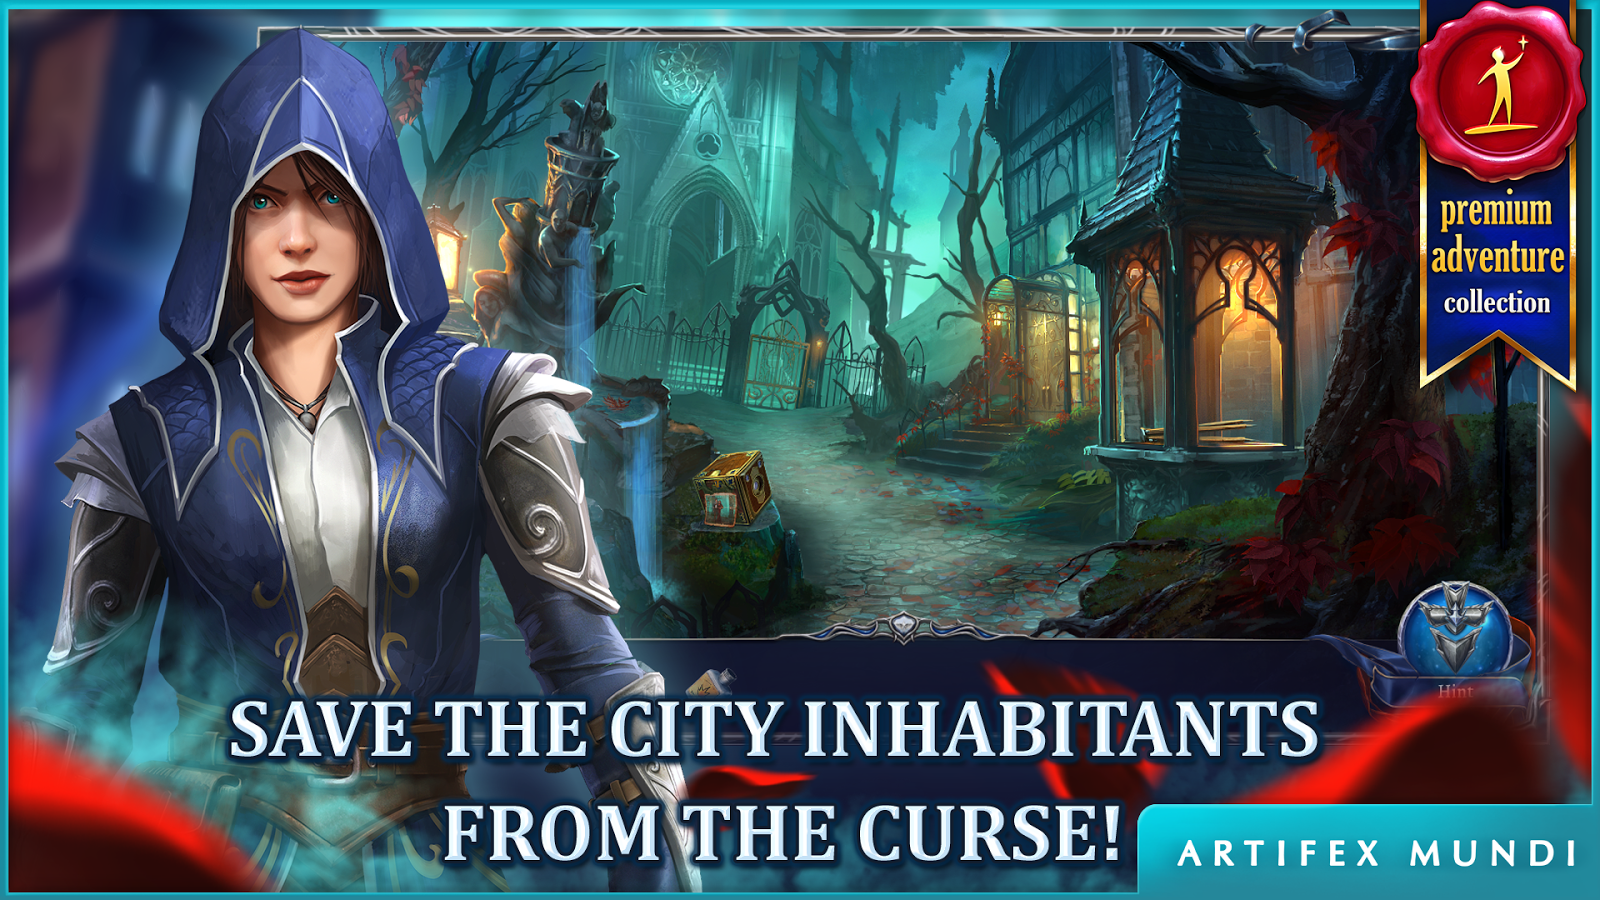 Grim Legends 3: The Dark City Screenshot 17